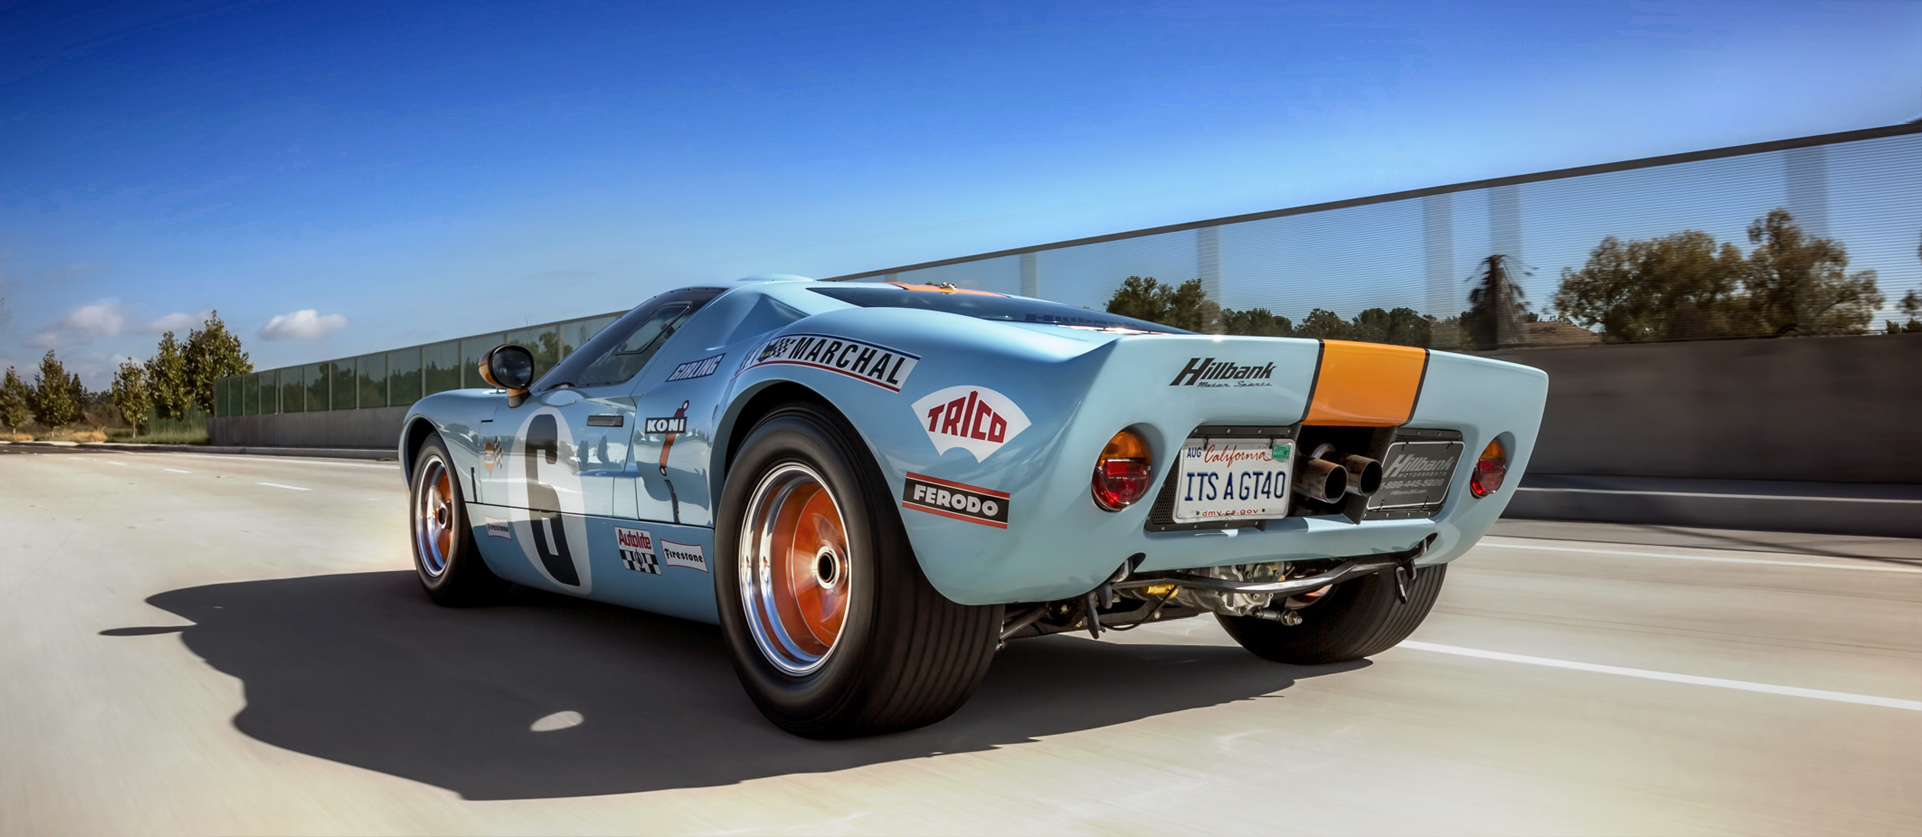 Genuine GT40 car for sale, produced by Superformance